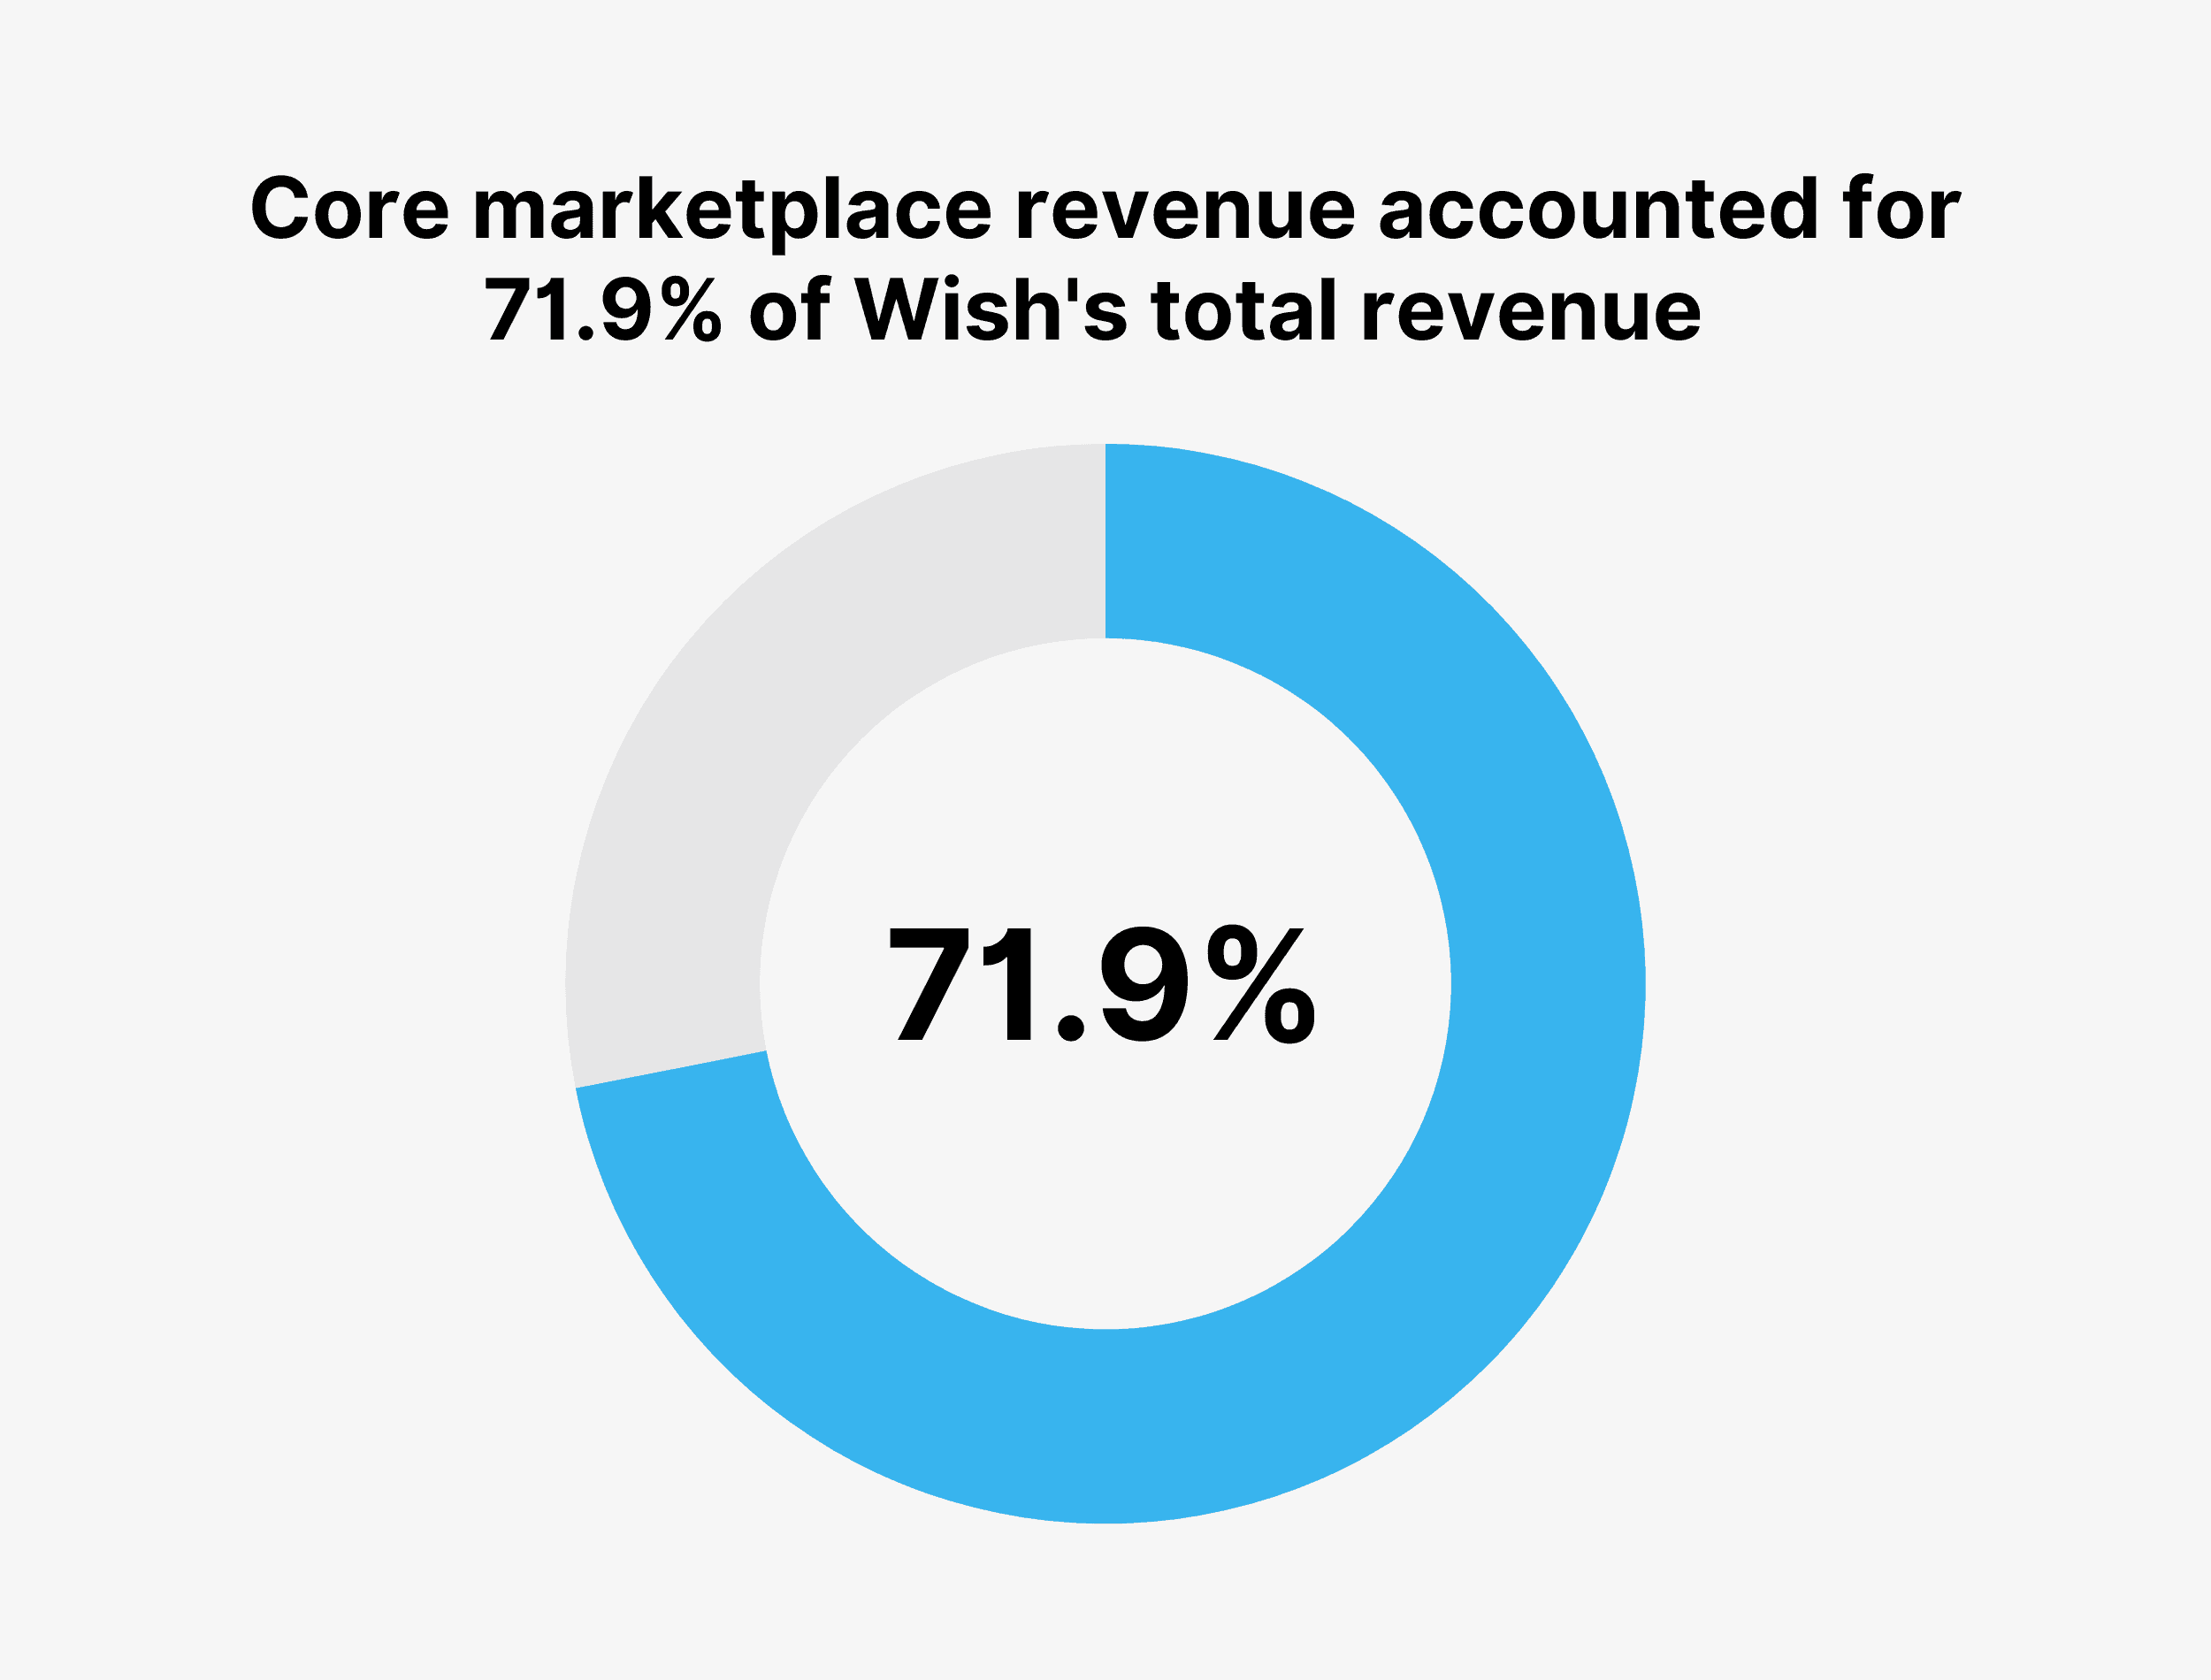 Core marketplace revenue accounted for 71.9% of Wish's total revenue